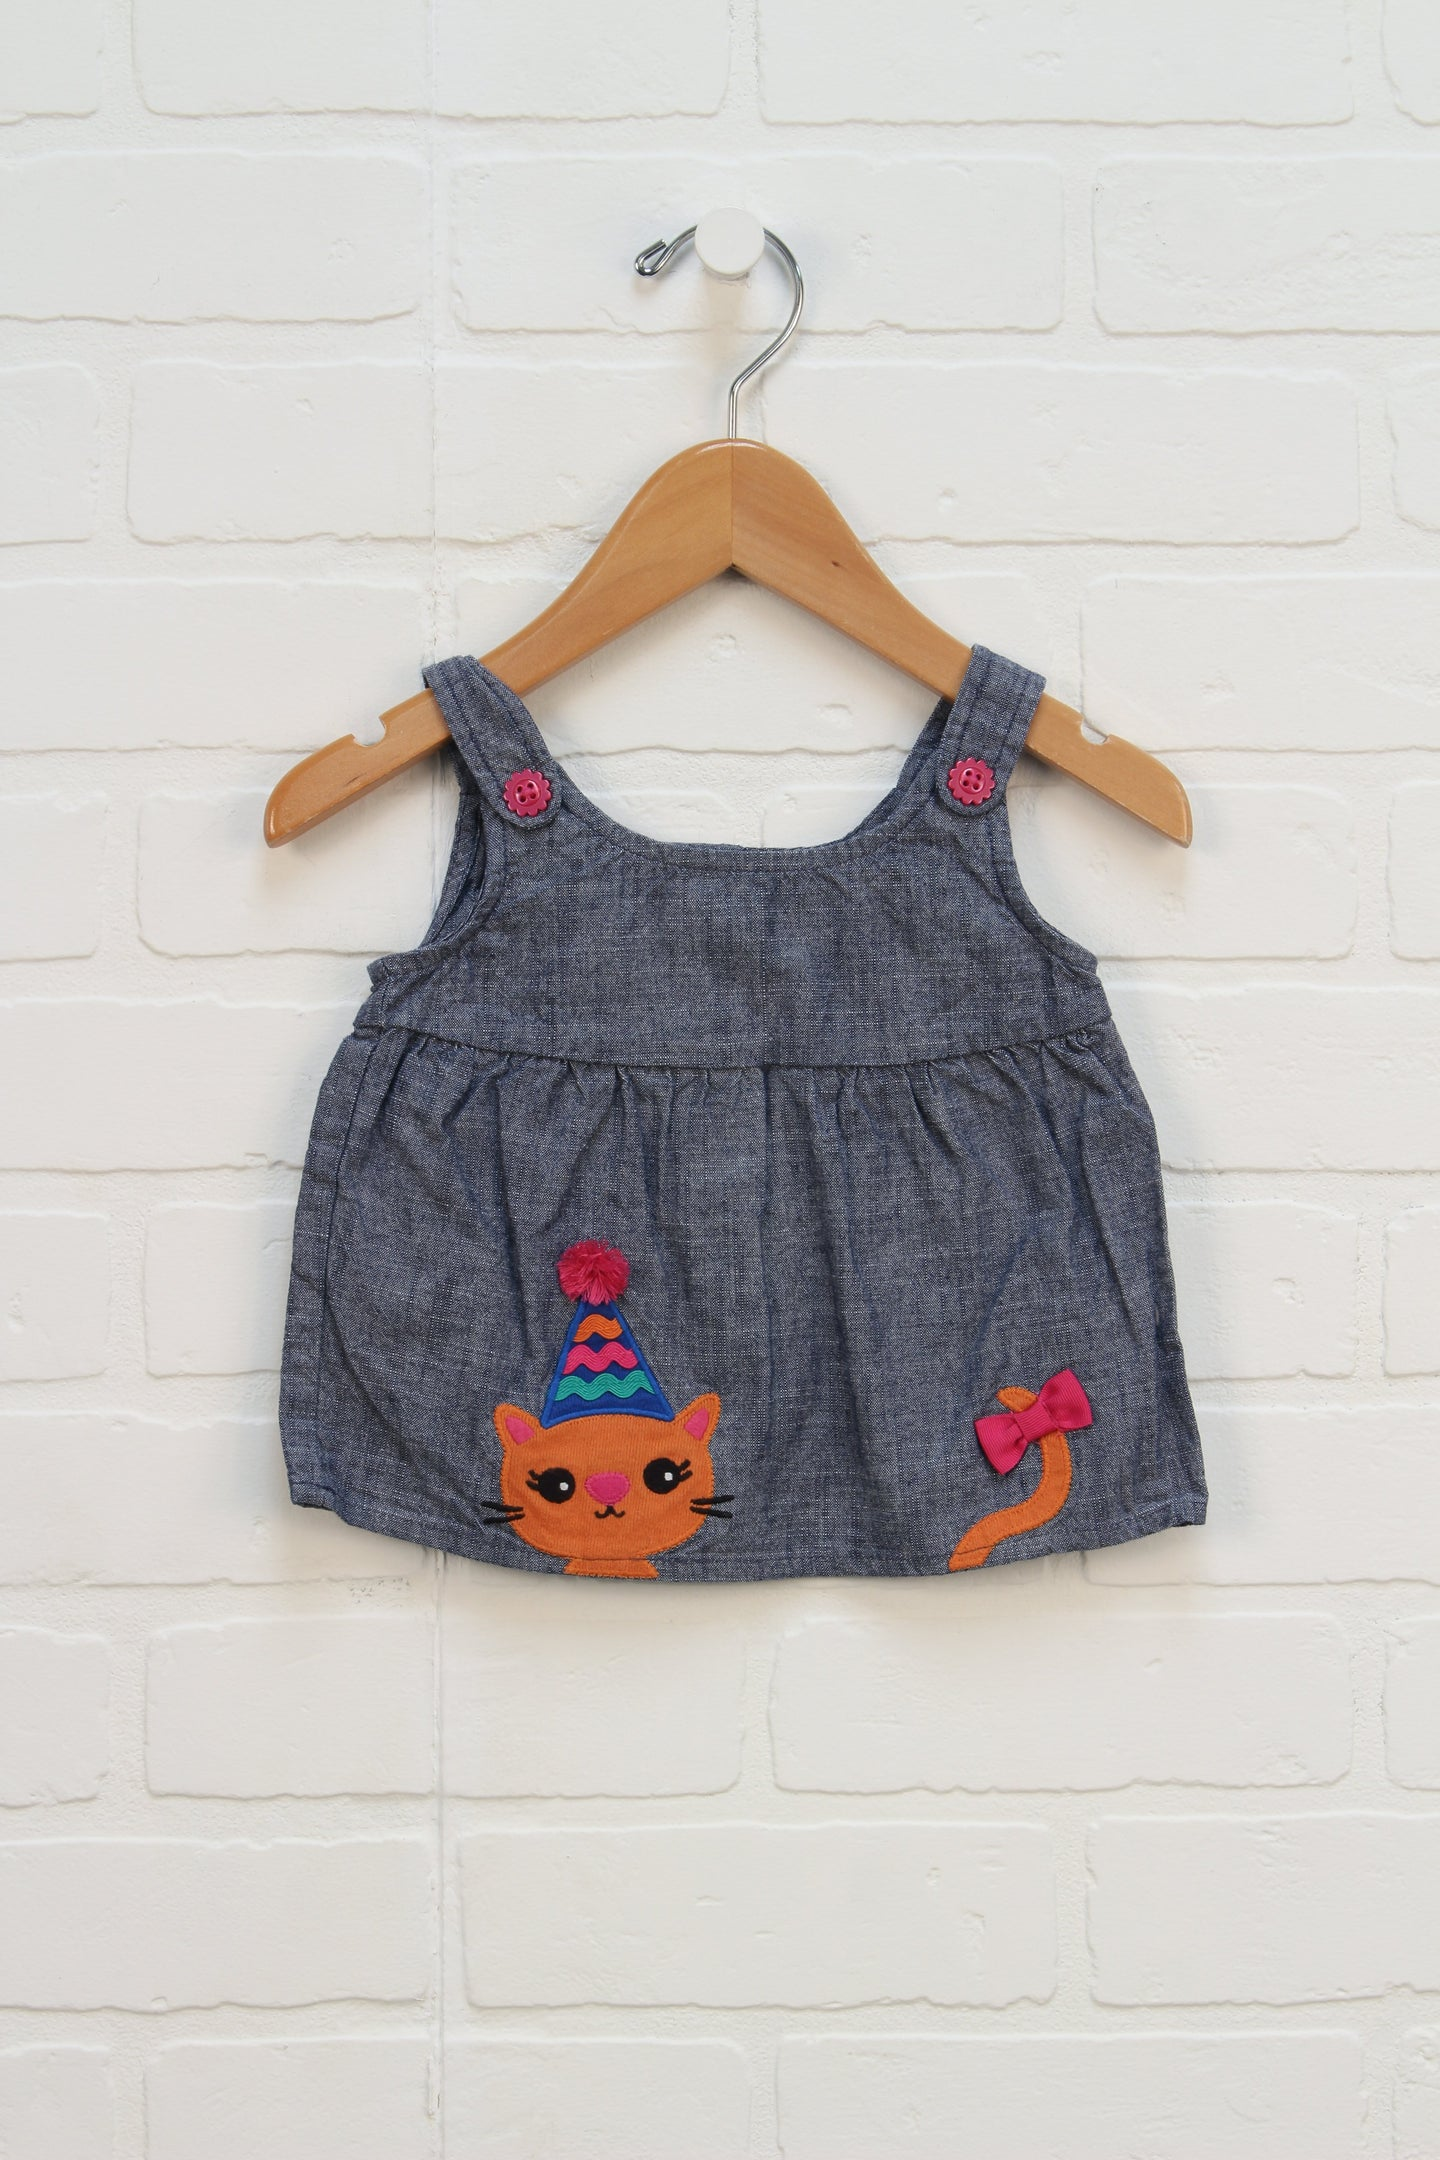 Embroidered Denim Dress: Cat (Size 3-6M)